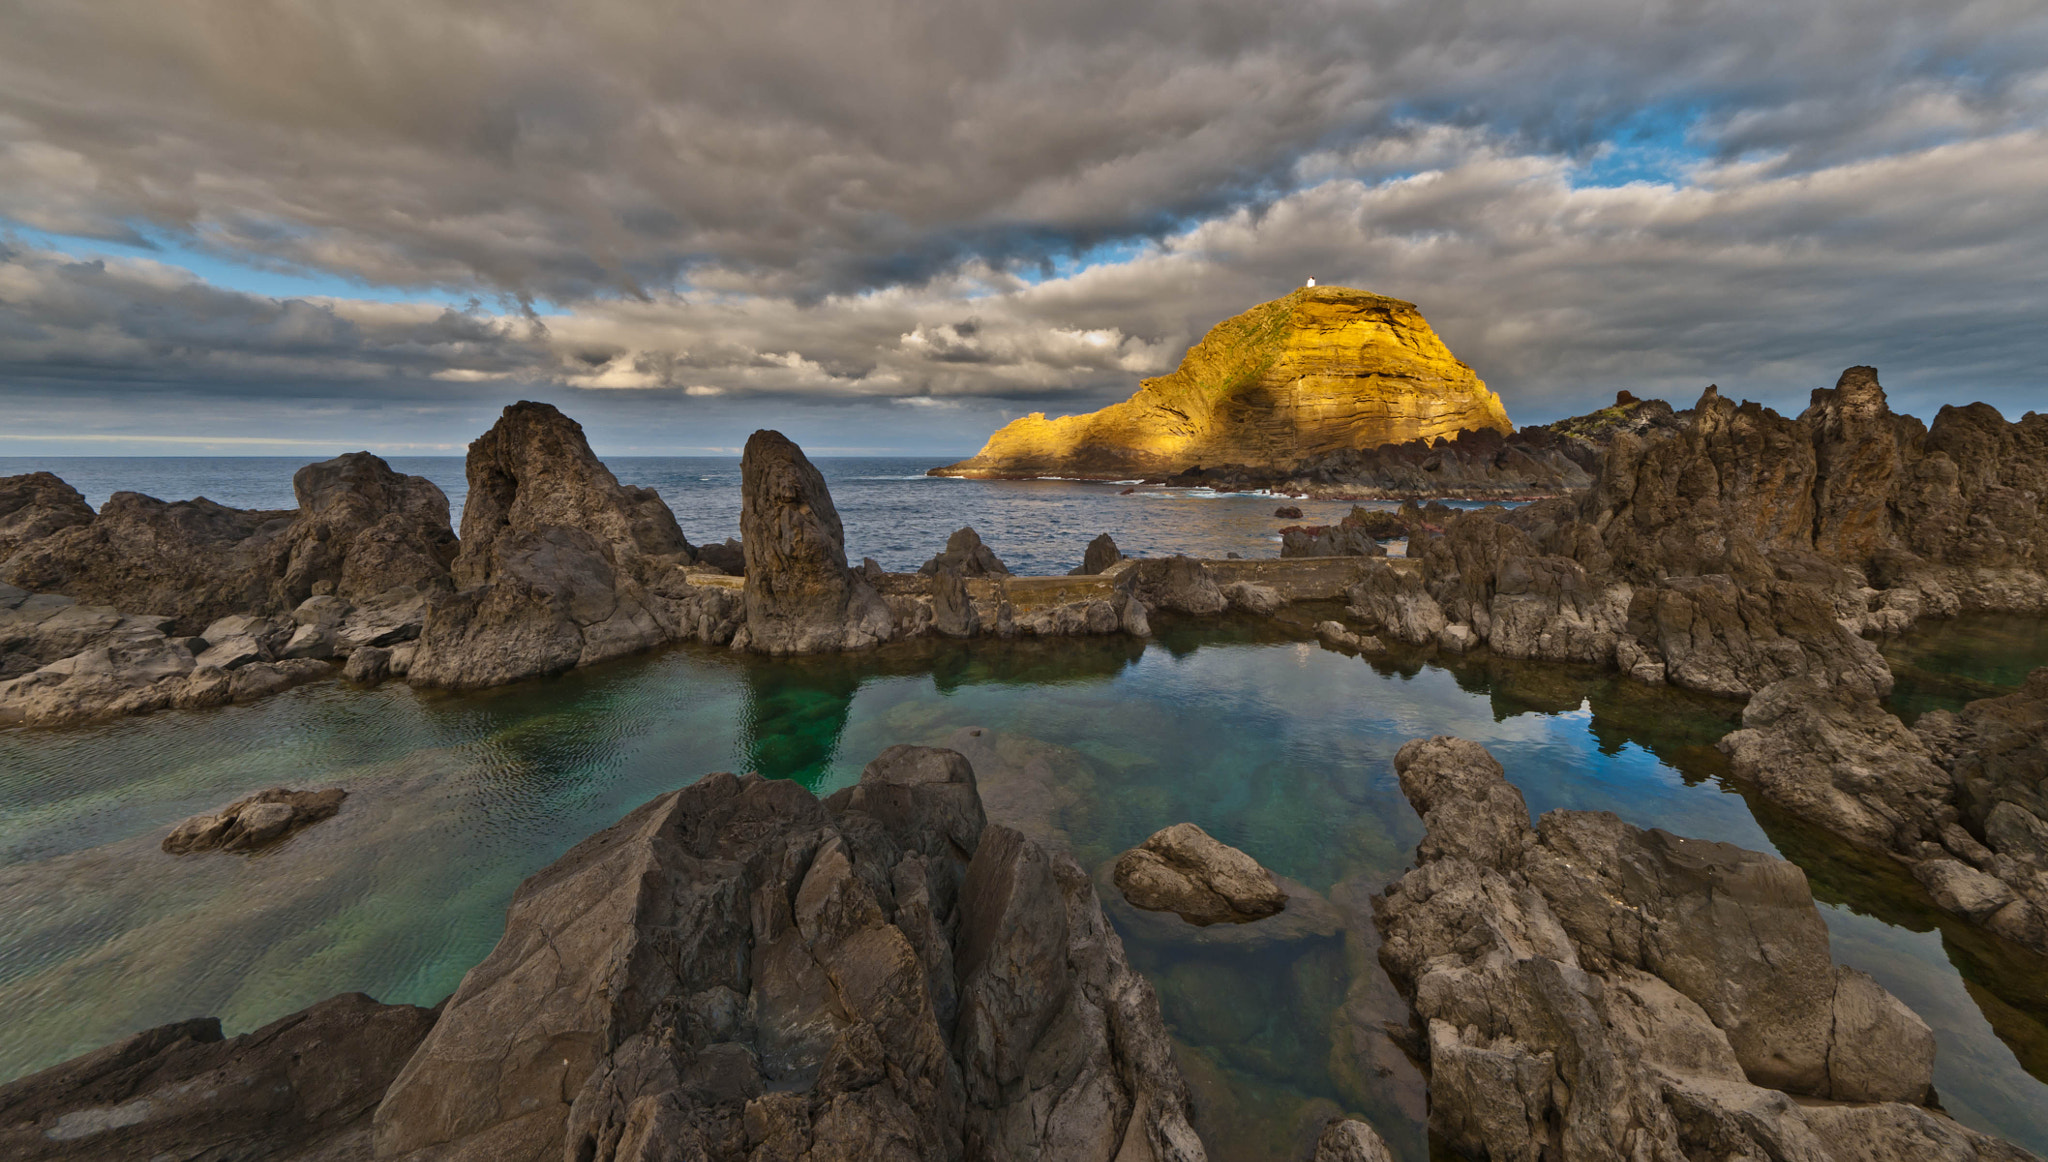 Photograph Porto Moniz by Anders Larsson on 500px